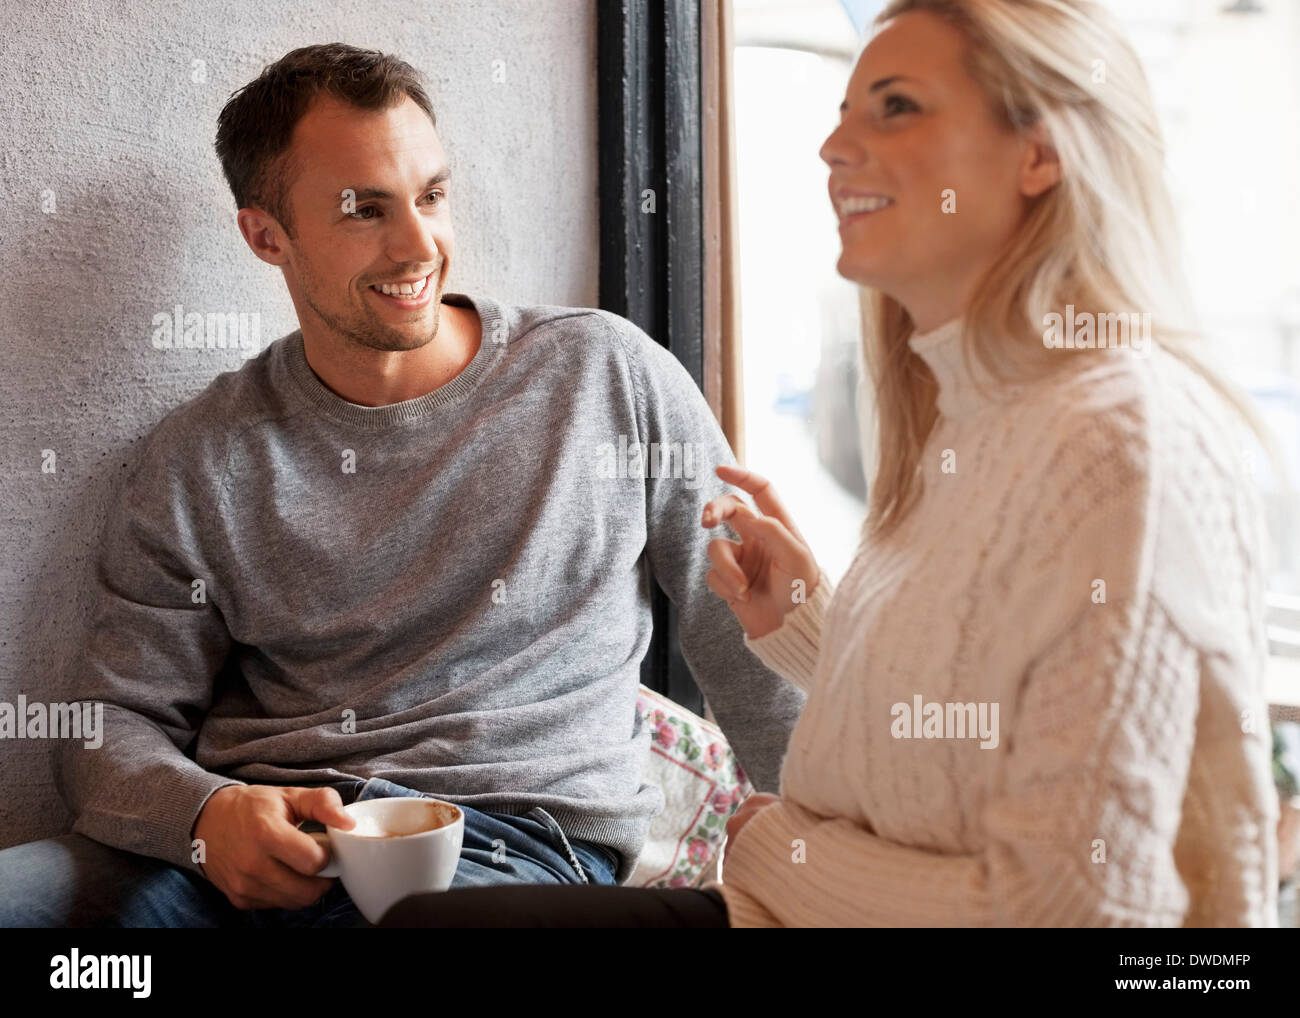 Happy young couple spending quality time at cafe - Stock Image